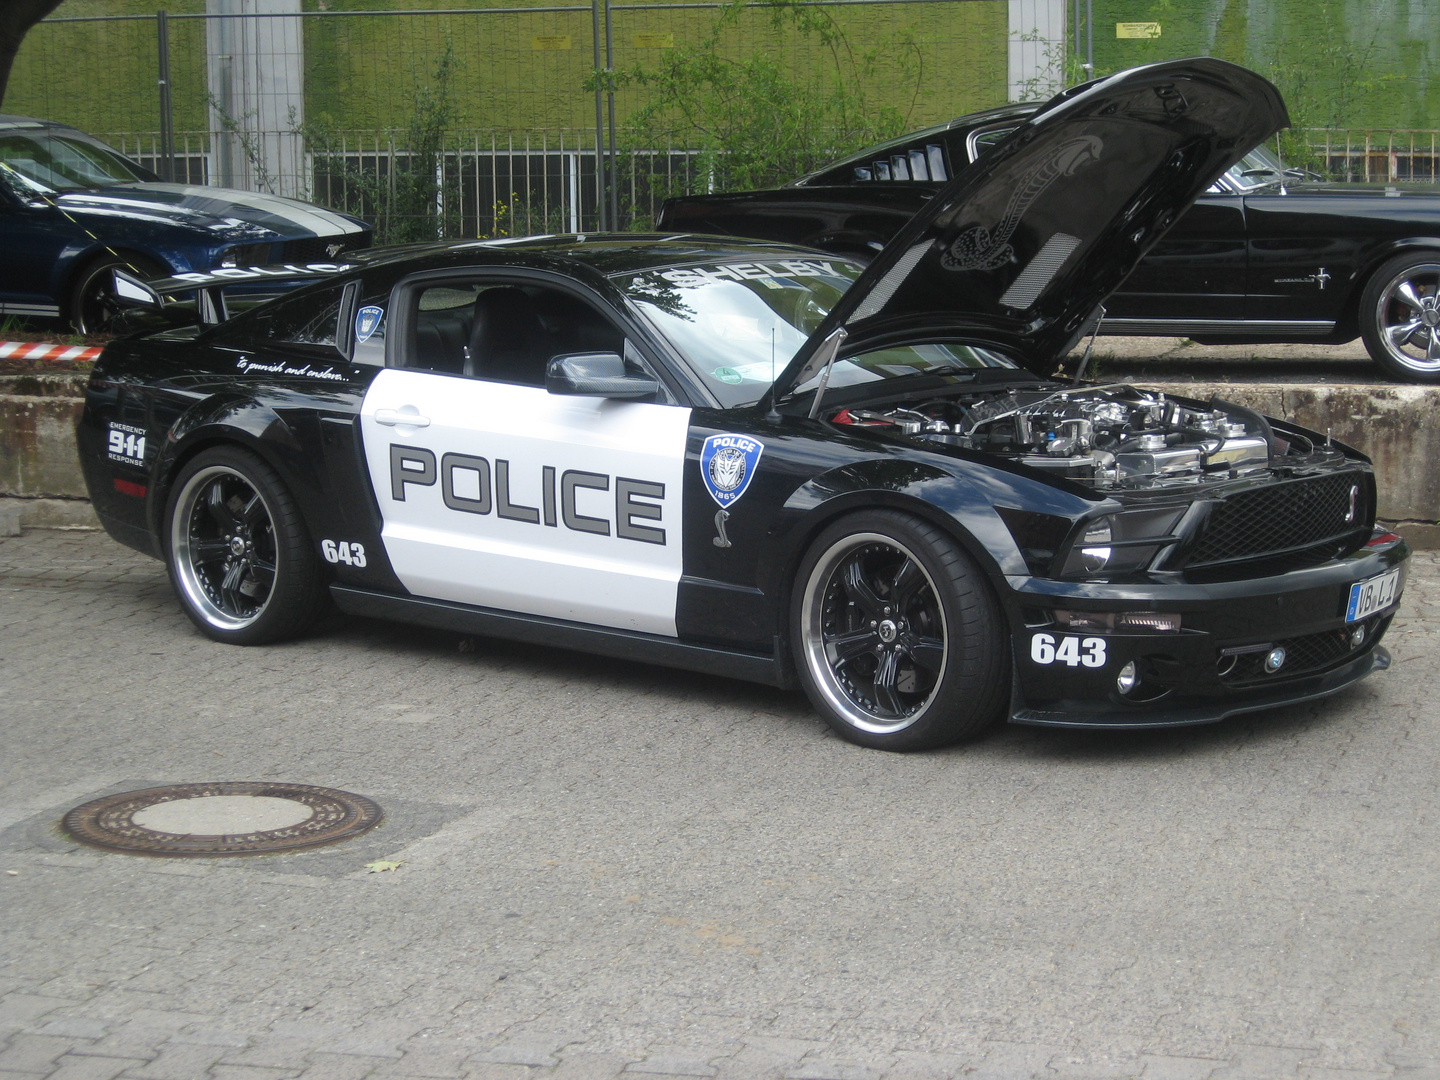 2012 Ford Mustang Treffen in der Classic-Stadt-Ffm - Clon POLICE FORD MUSTANG GT 500 -